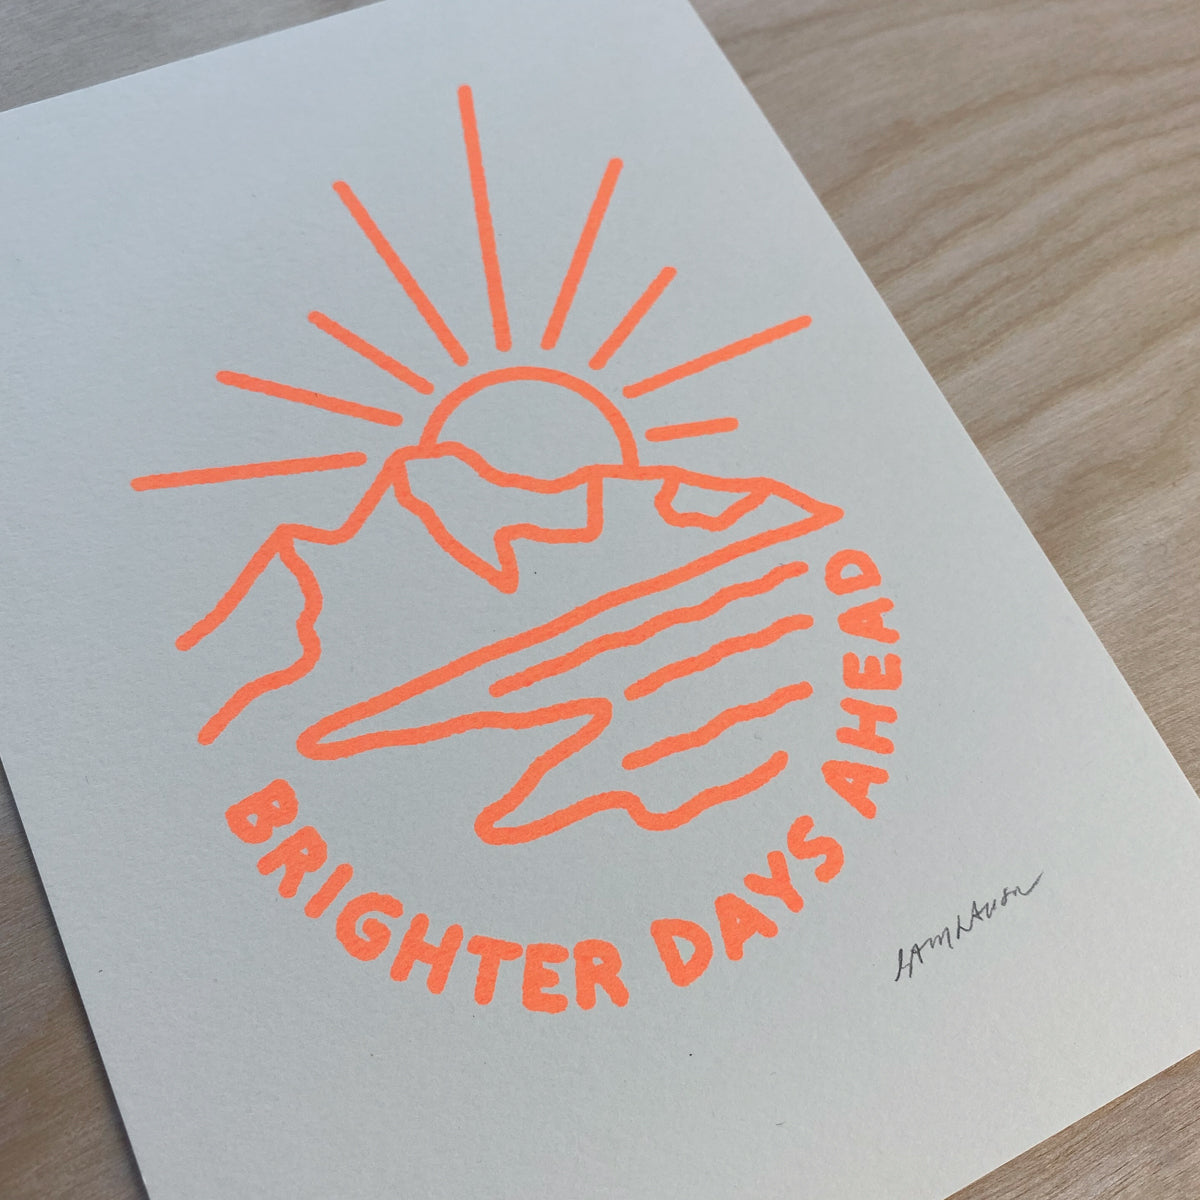 Brighter Days Ahead - Signed 5x7in Print #211